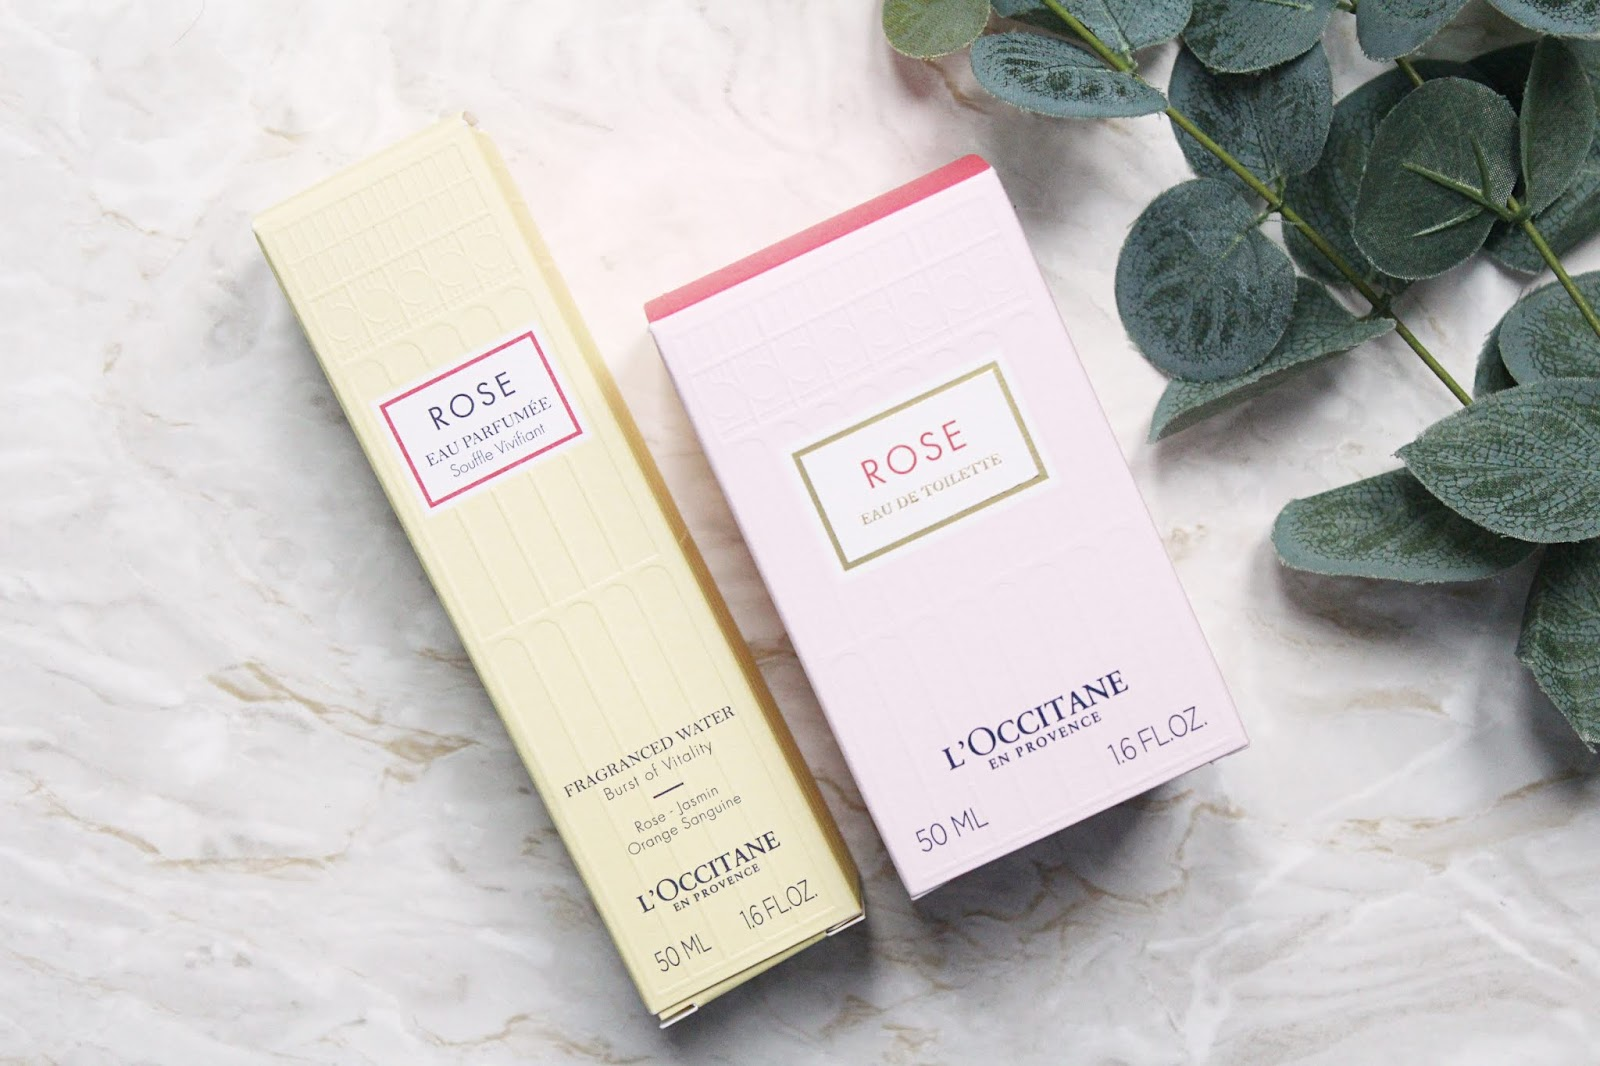 Two New Scents from L'Occitane